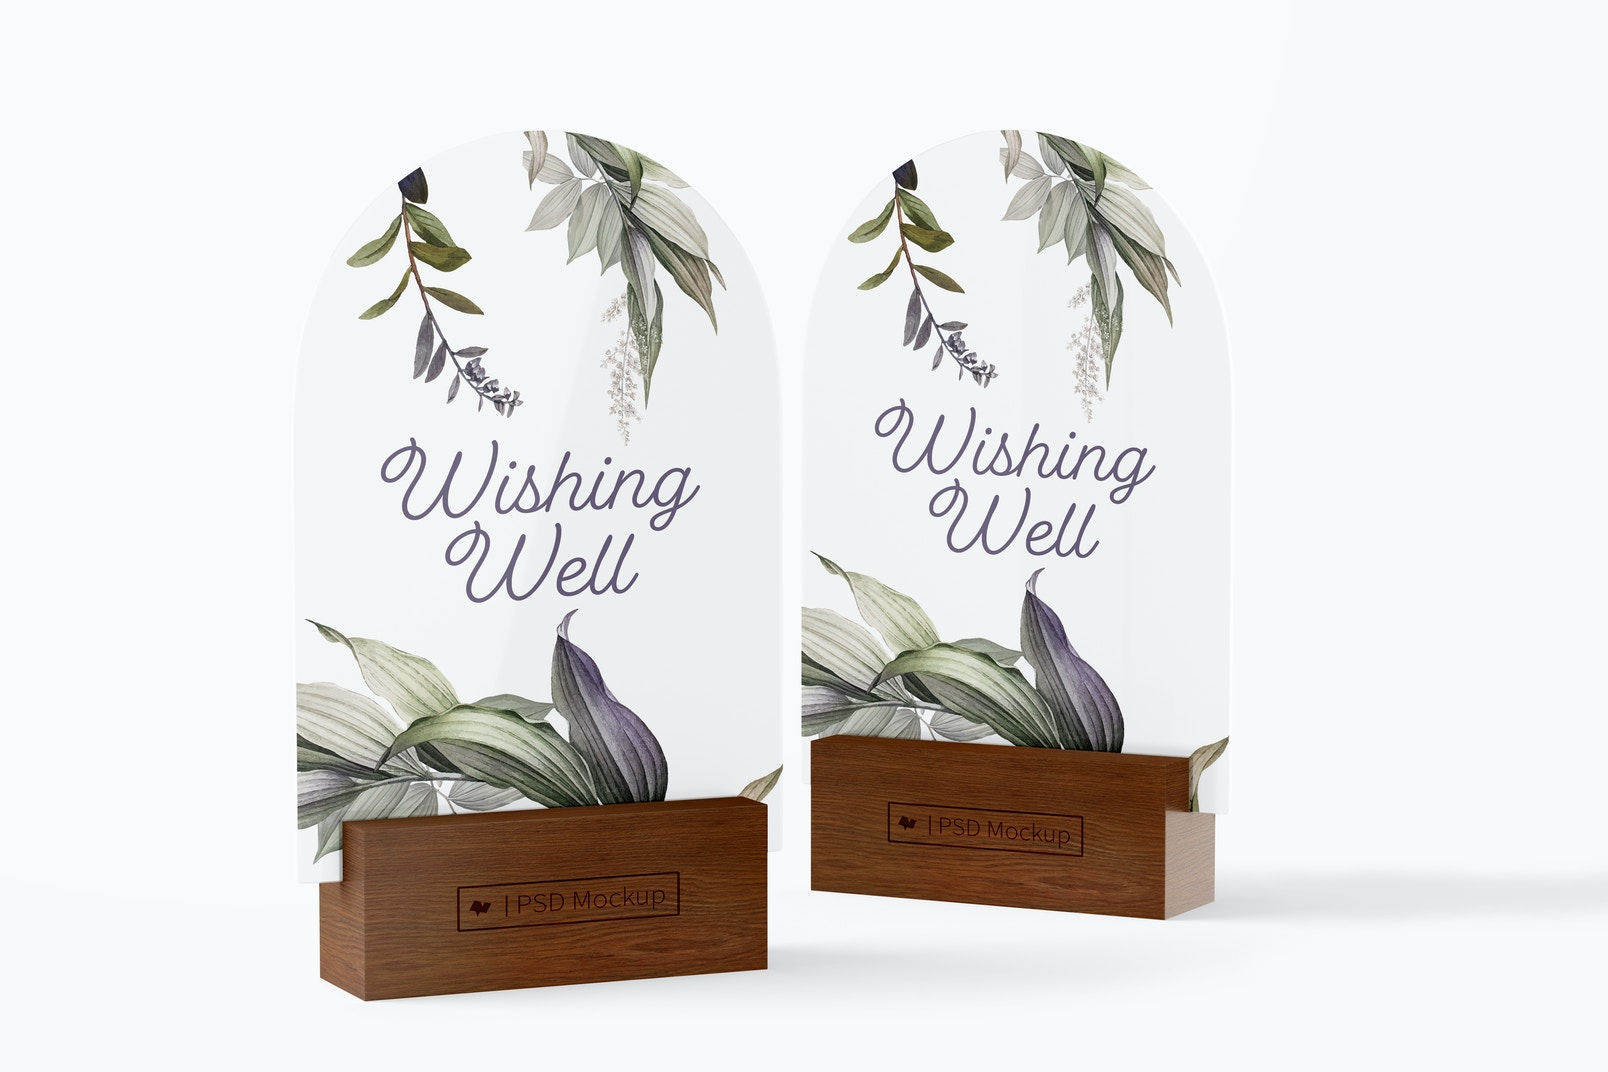 Acrylic Arch Table Signs Mockup